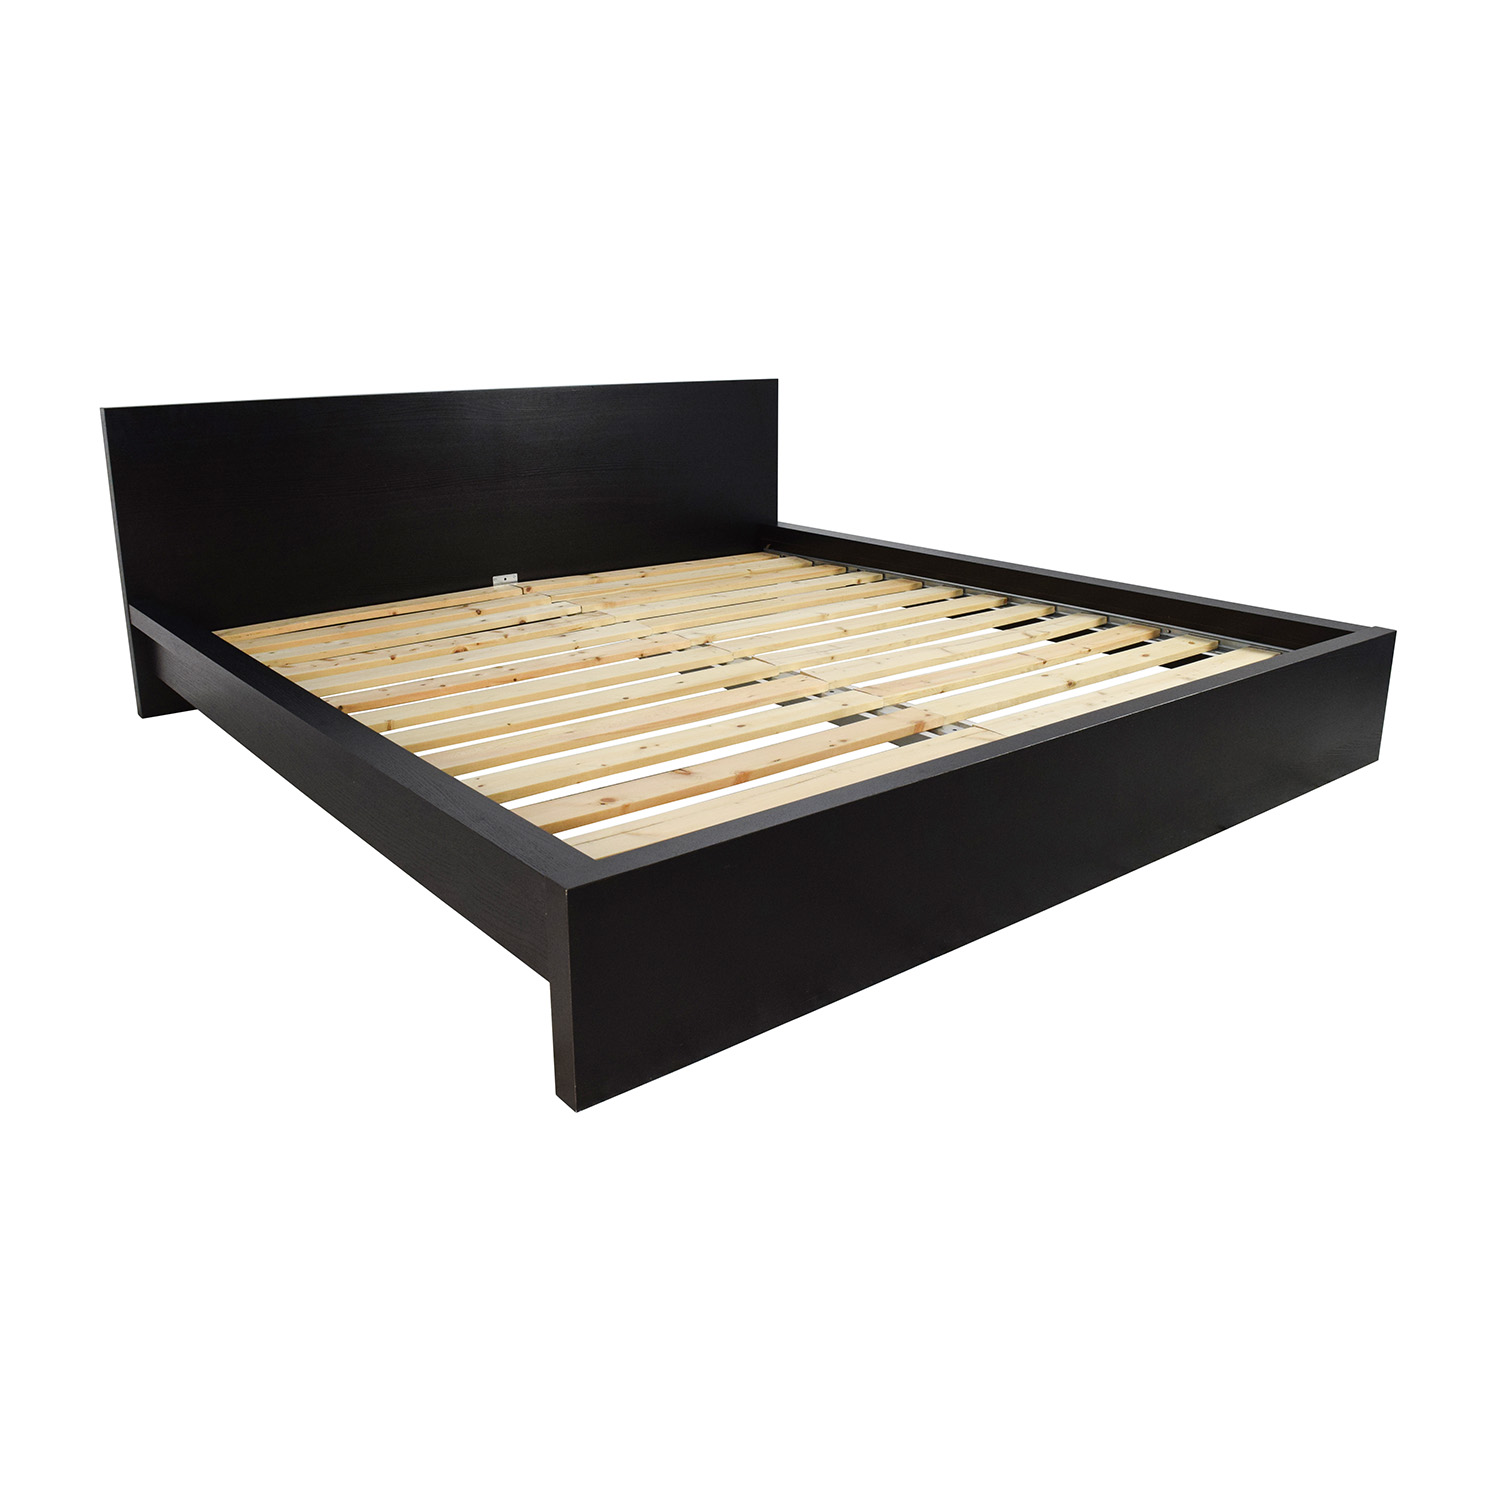 81 off ikea ikea malm king size bed beds for King size bed frame